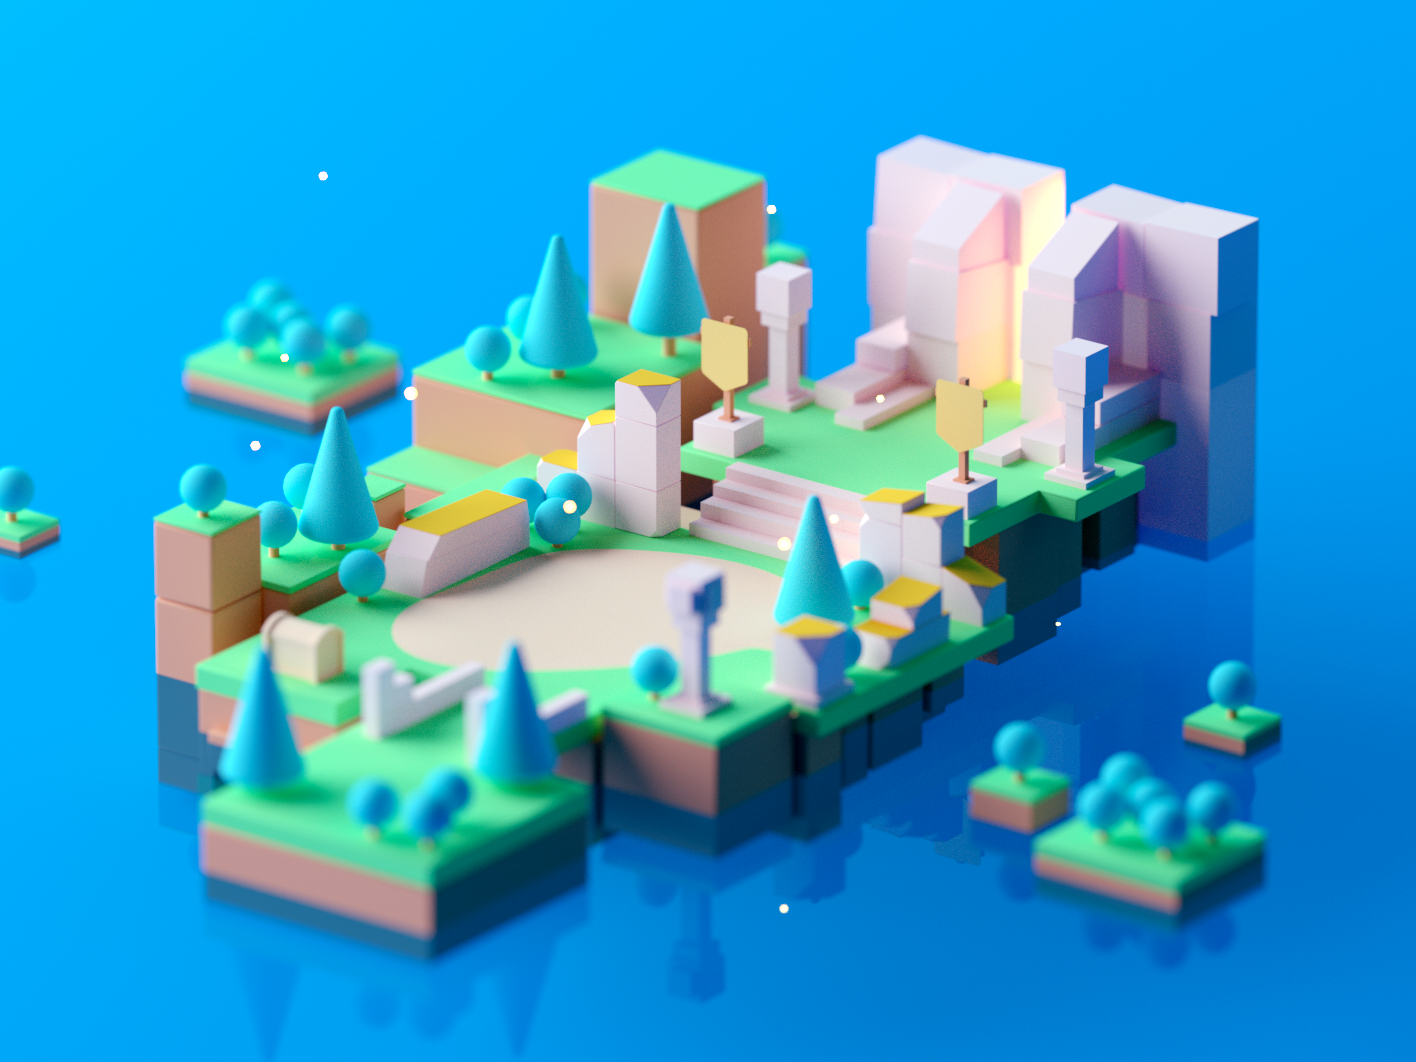 Game Environment #2 game design design game building fantasy illustration low poly isometric room game lowpoly octane cinema 4d c4d 3d isometric